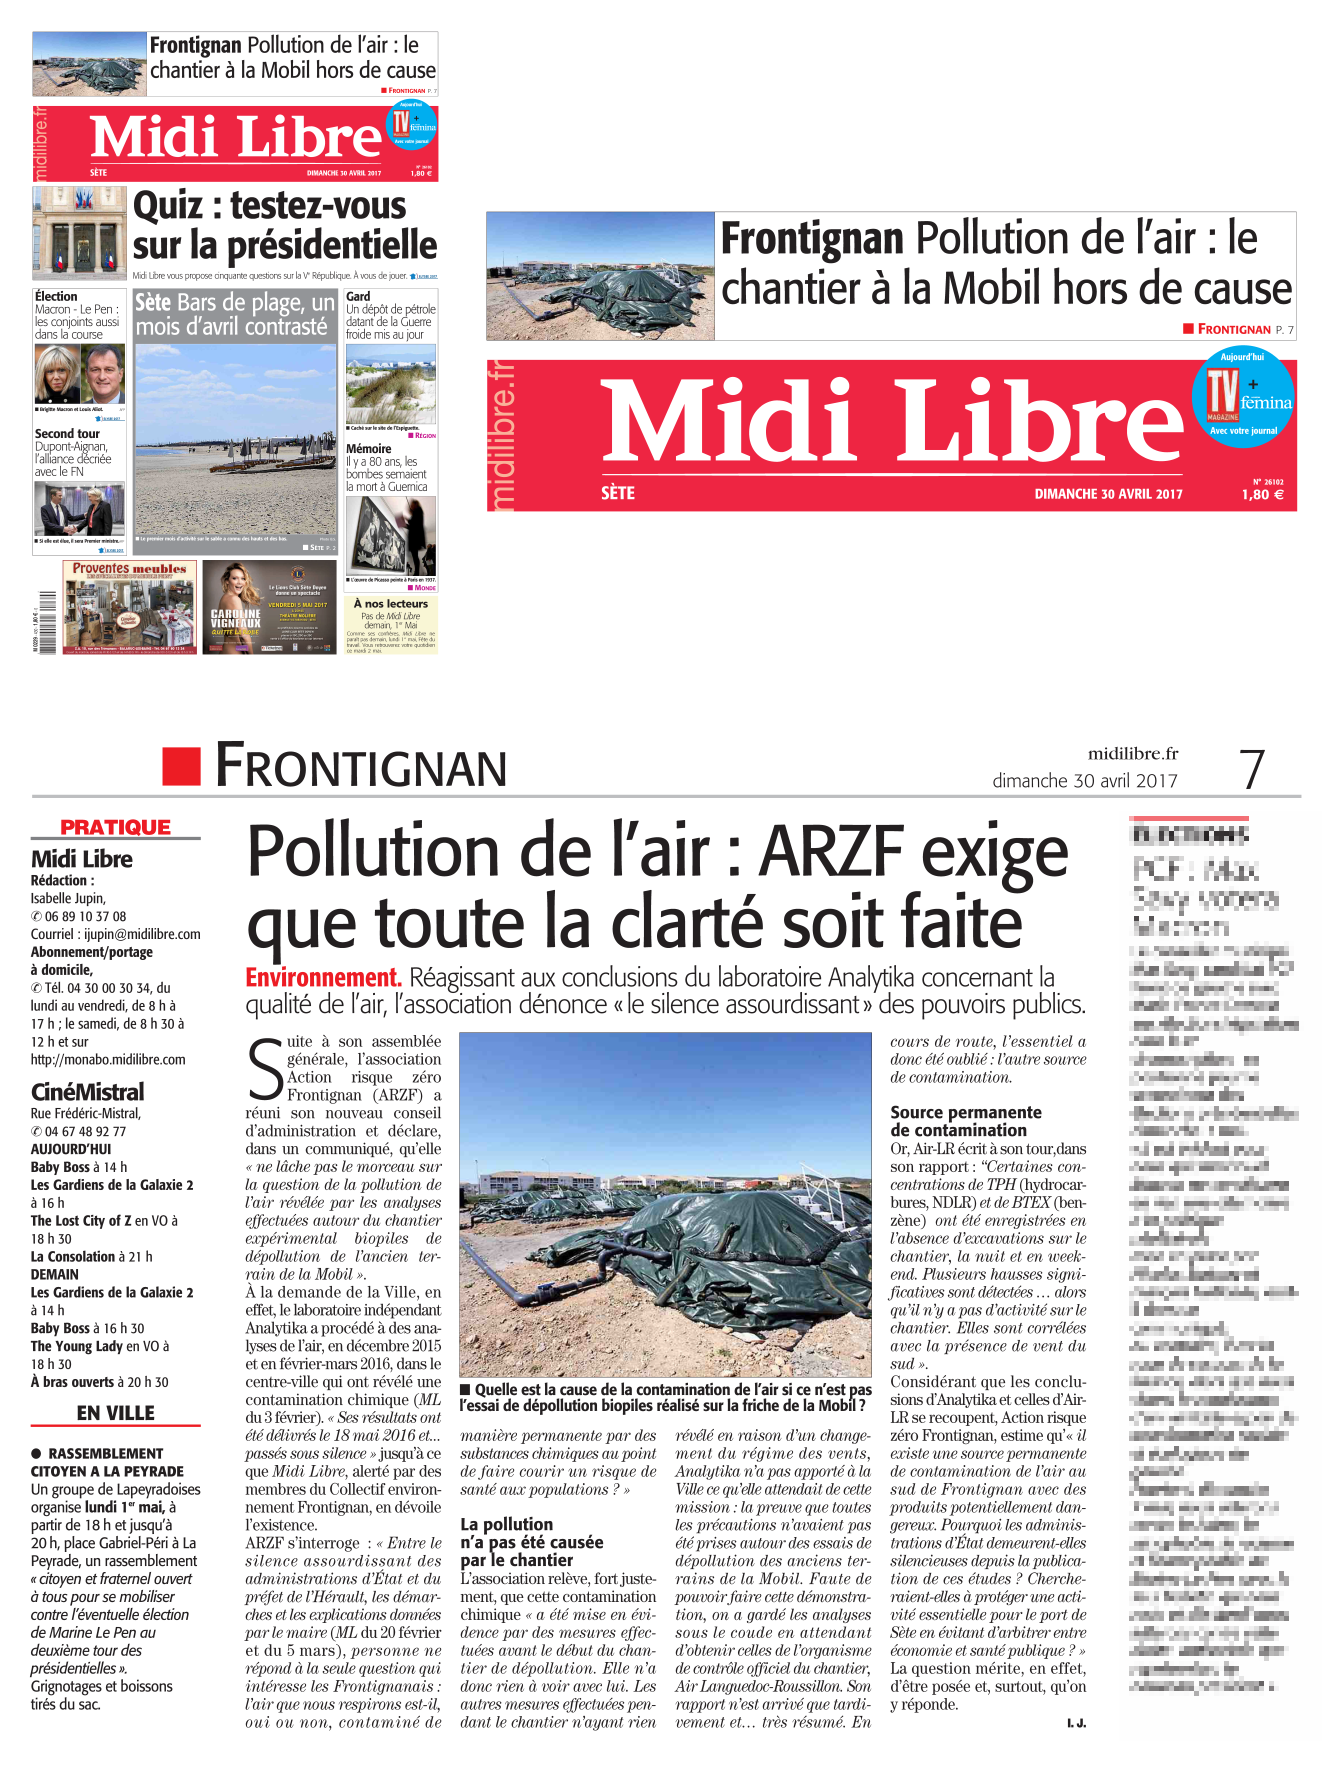 "30 AVRIL 2017 > MIDI-LIBRE : ""Frontignan : Pollution de l'air : L'association ARZF exige que toute la clarté soit faite"""